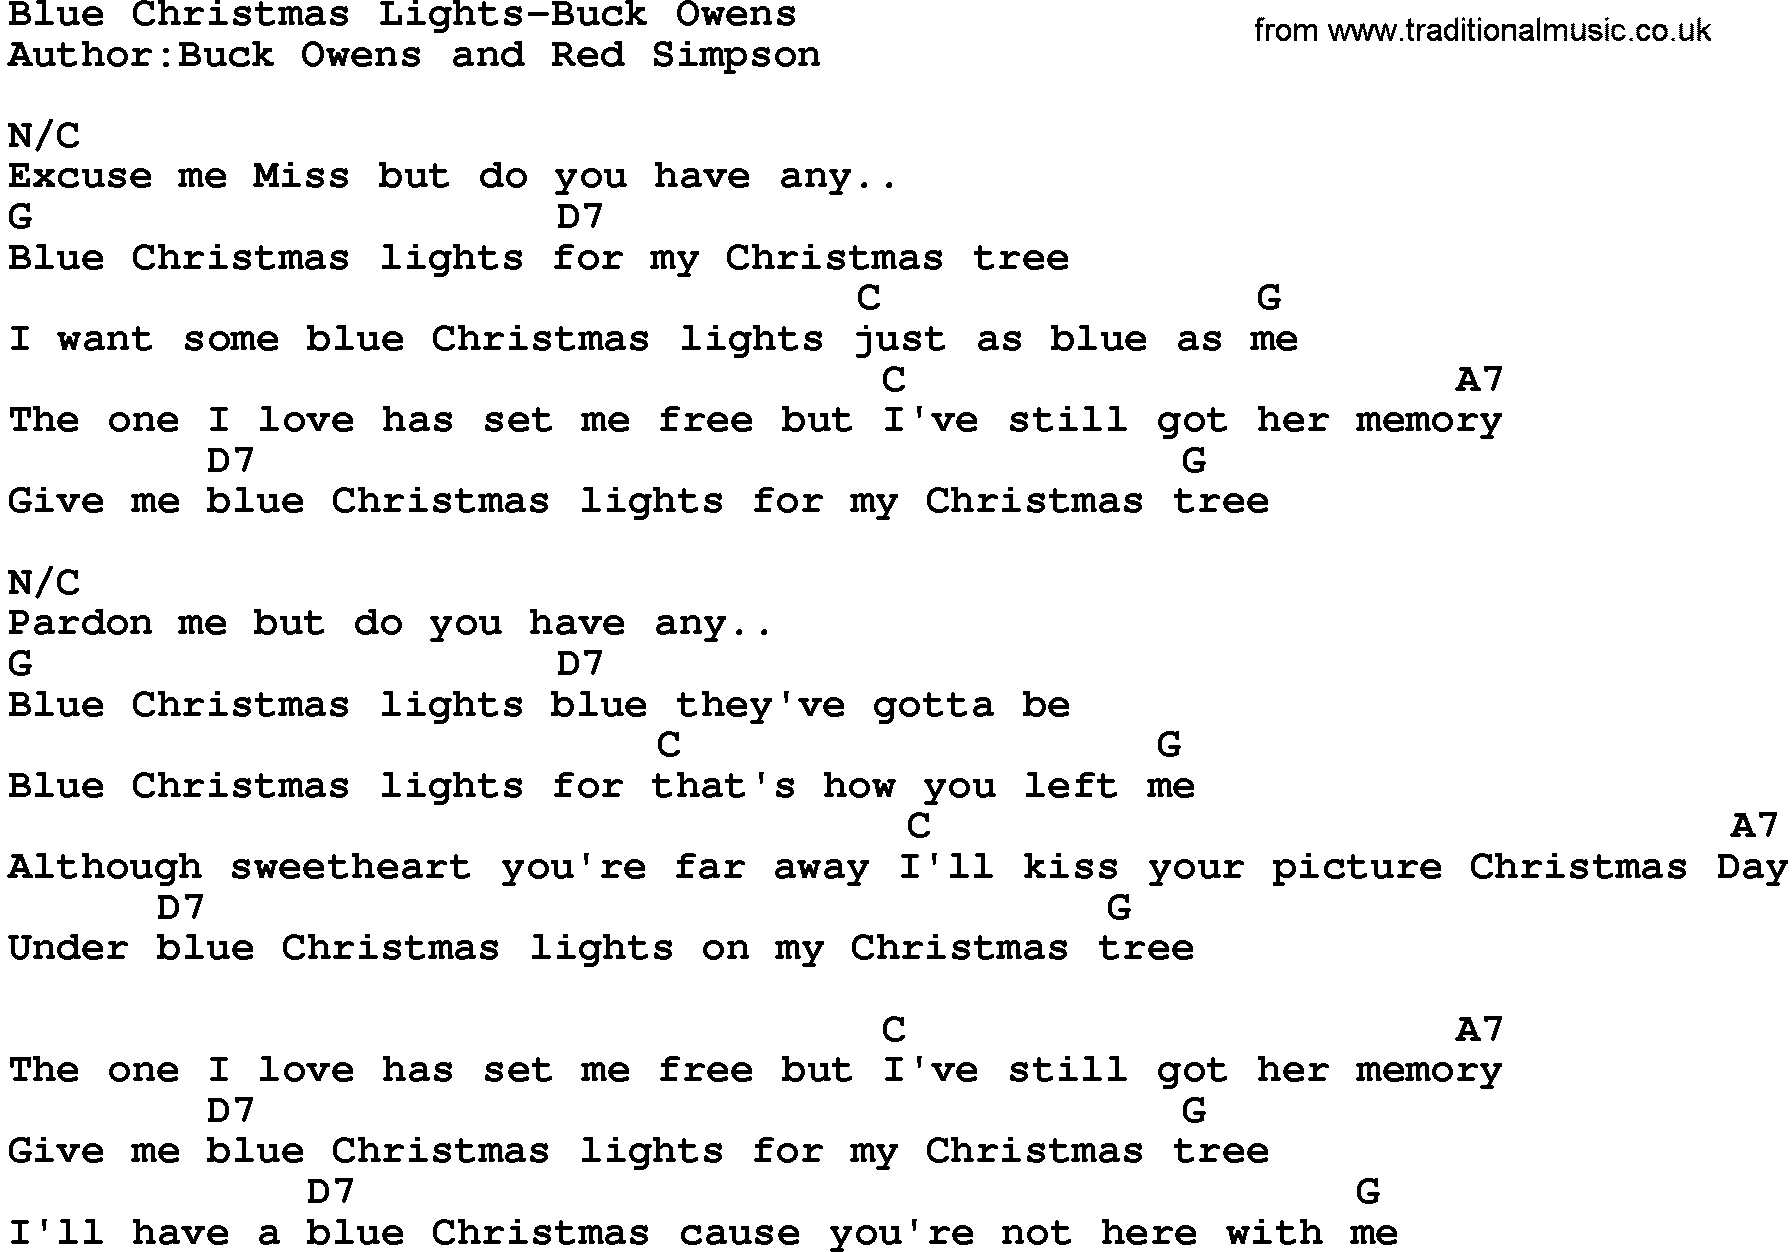 Blue Christmas Chords Country Musicblue Christmas Lights Buck Owens Lyrics And Chords